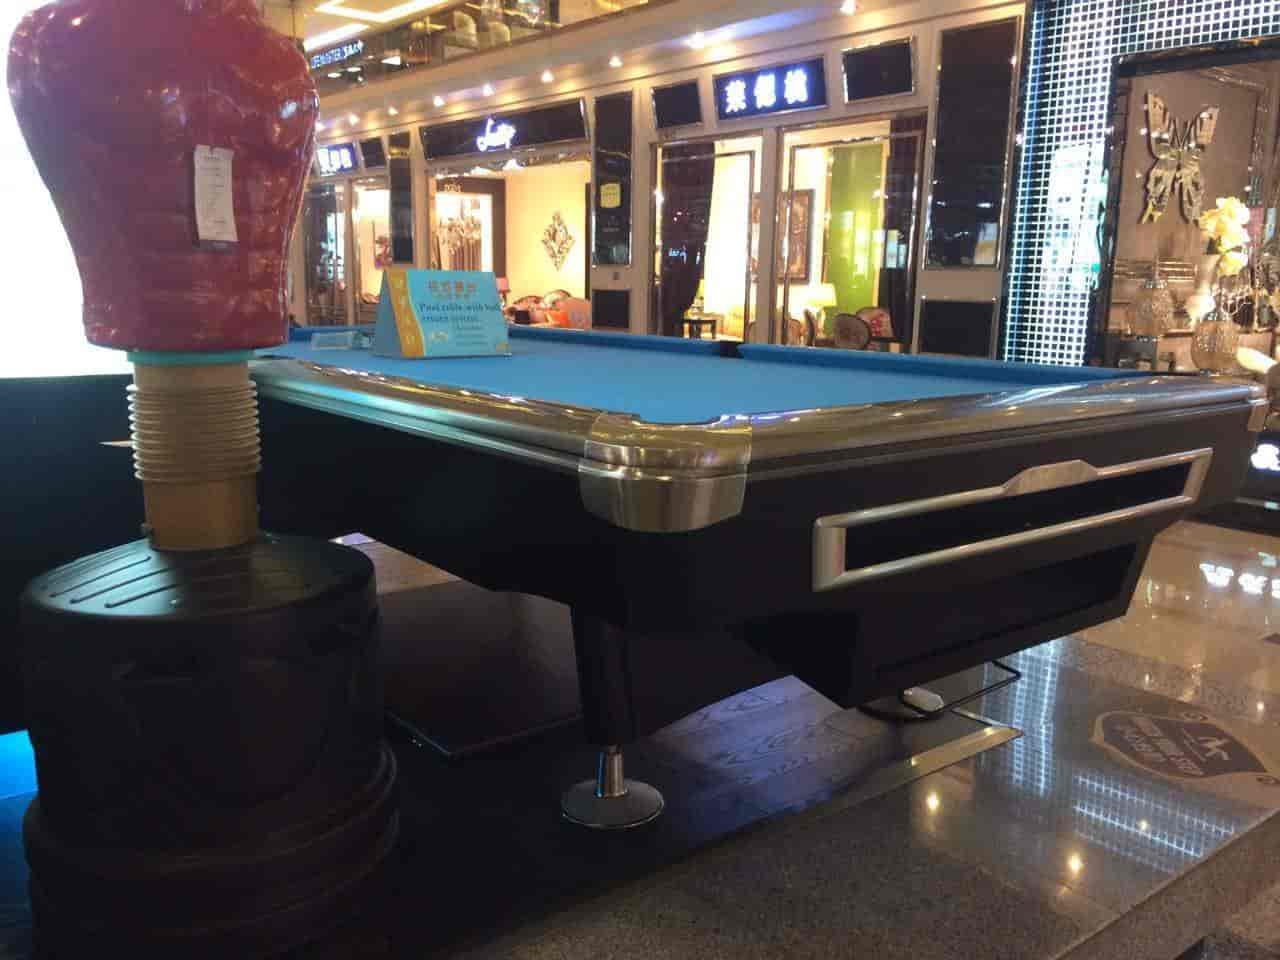 Pool Table Repair Near Me Images Pool Table Repair - Pool table assembly service near me